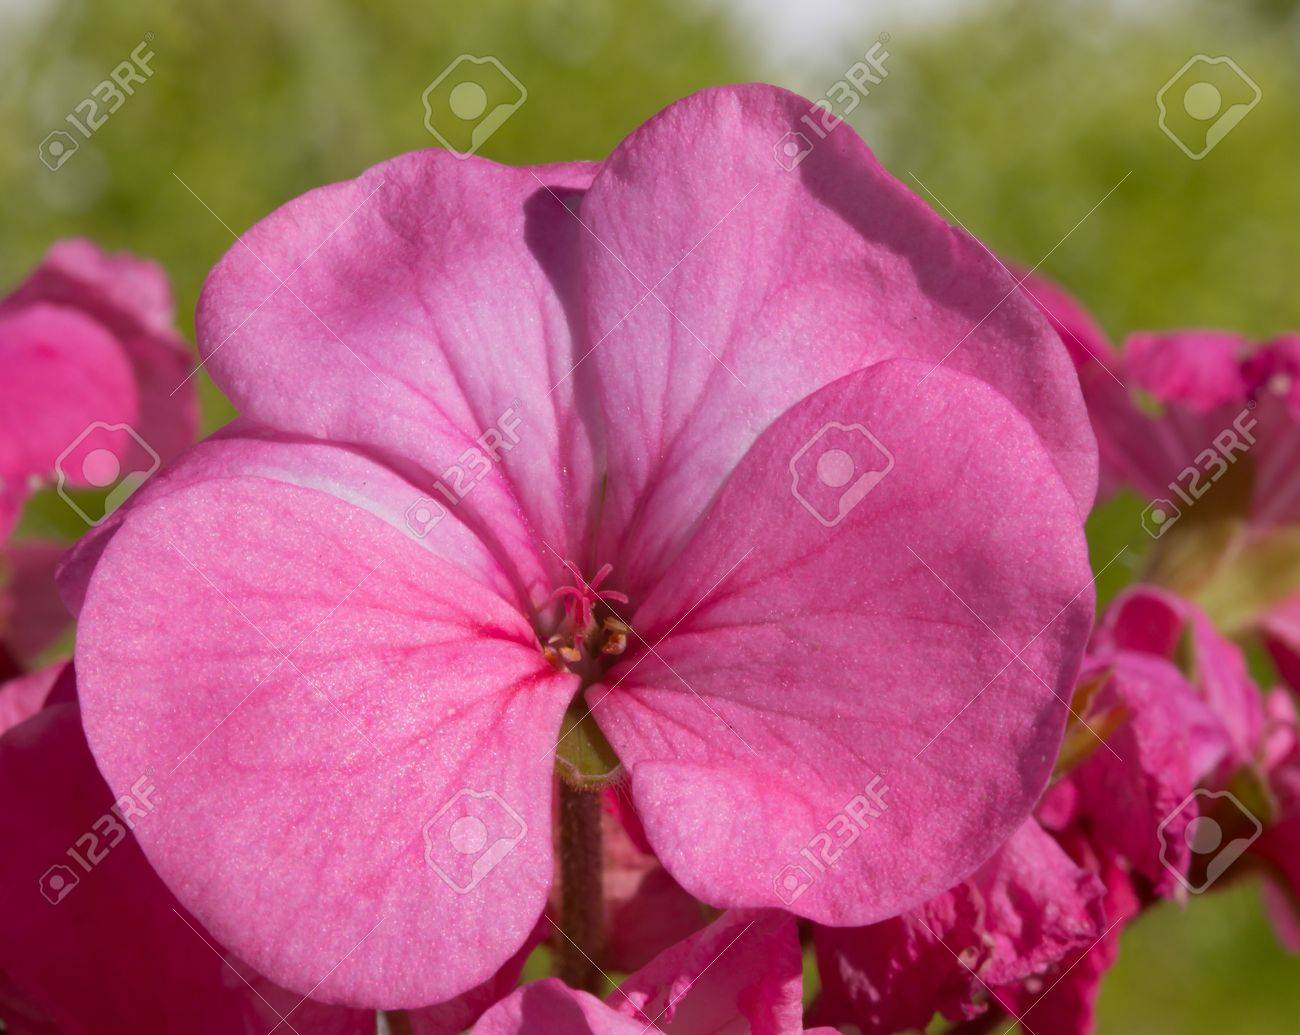 Pink Geranium Flower Close Up Showing Delicate Pink Stamen Picture